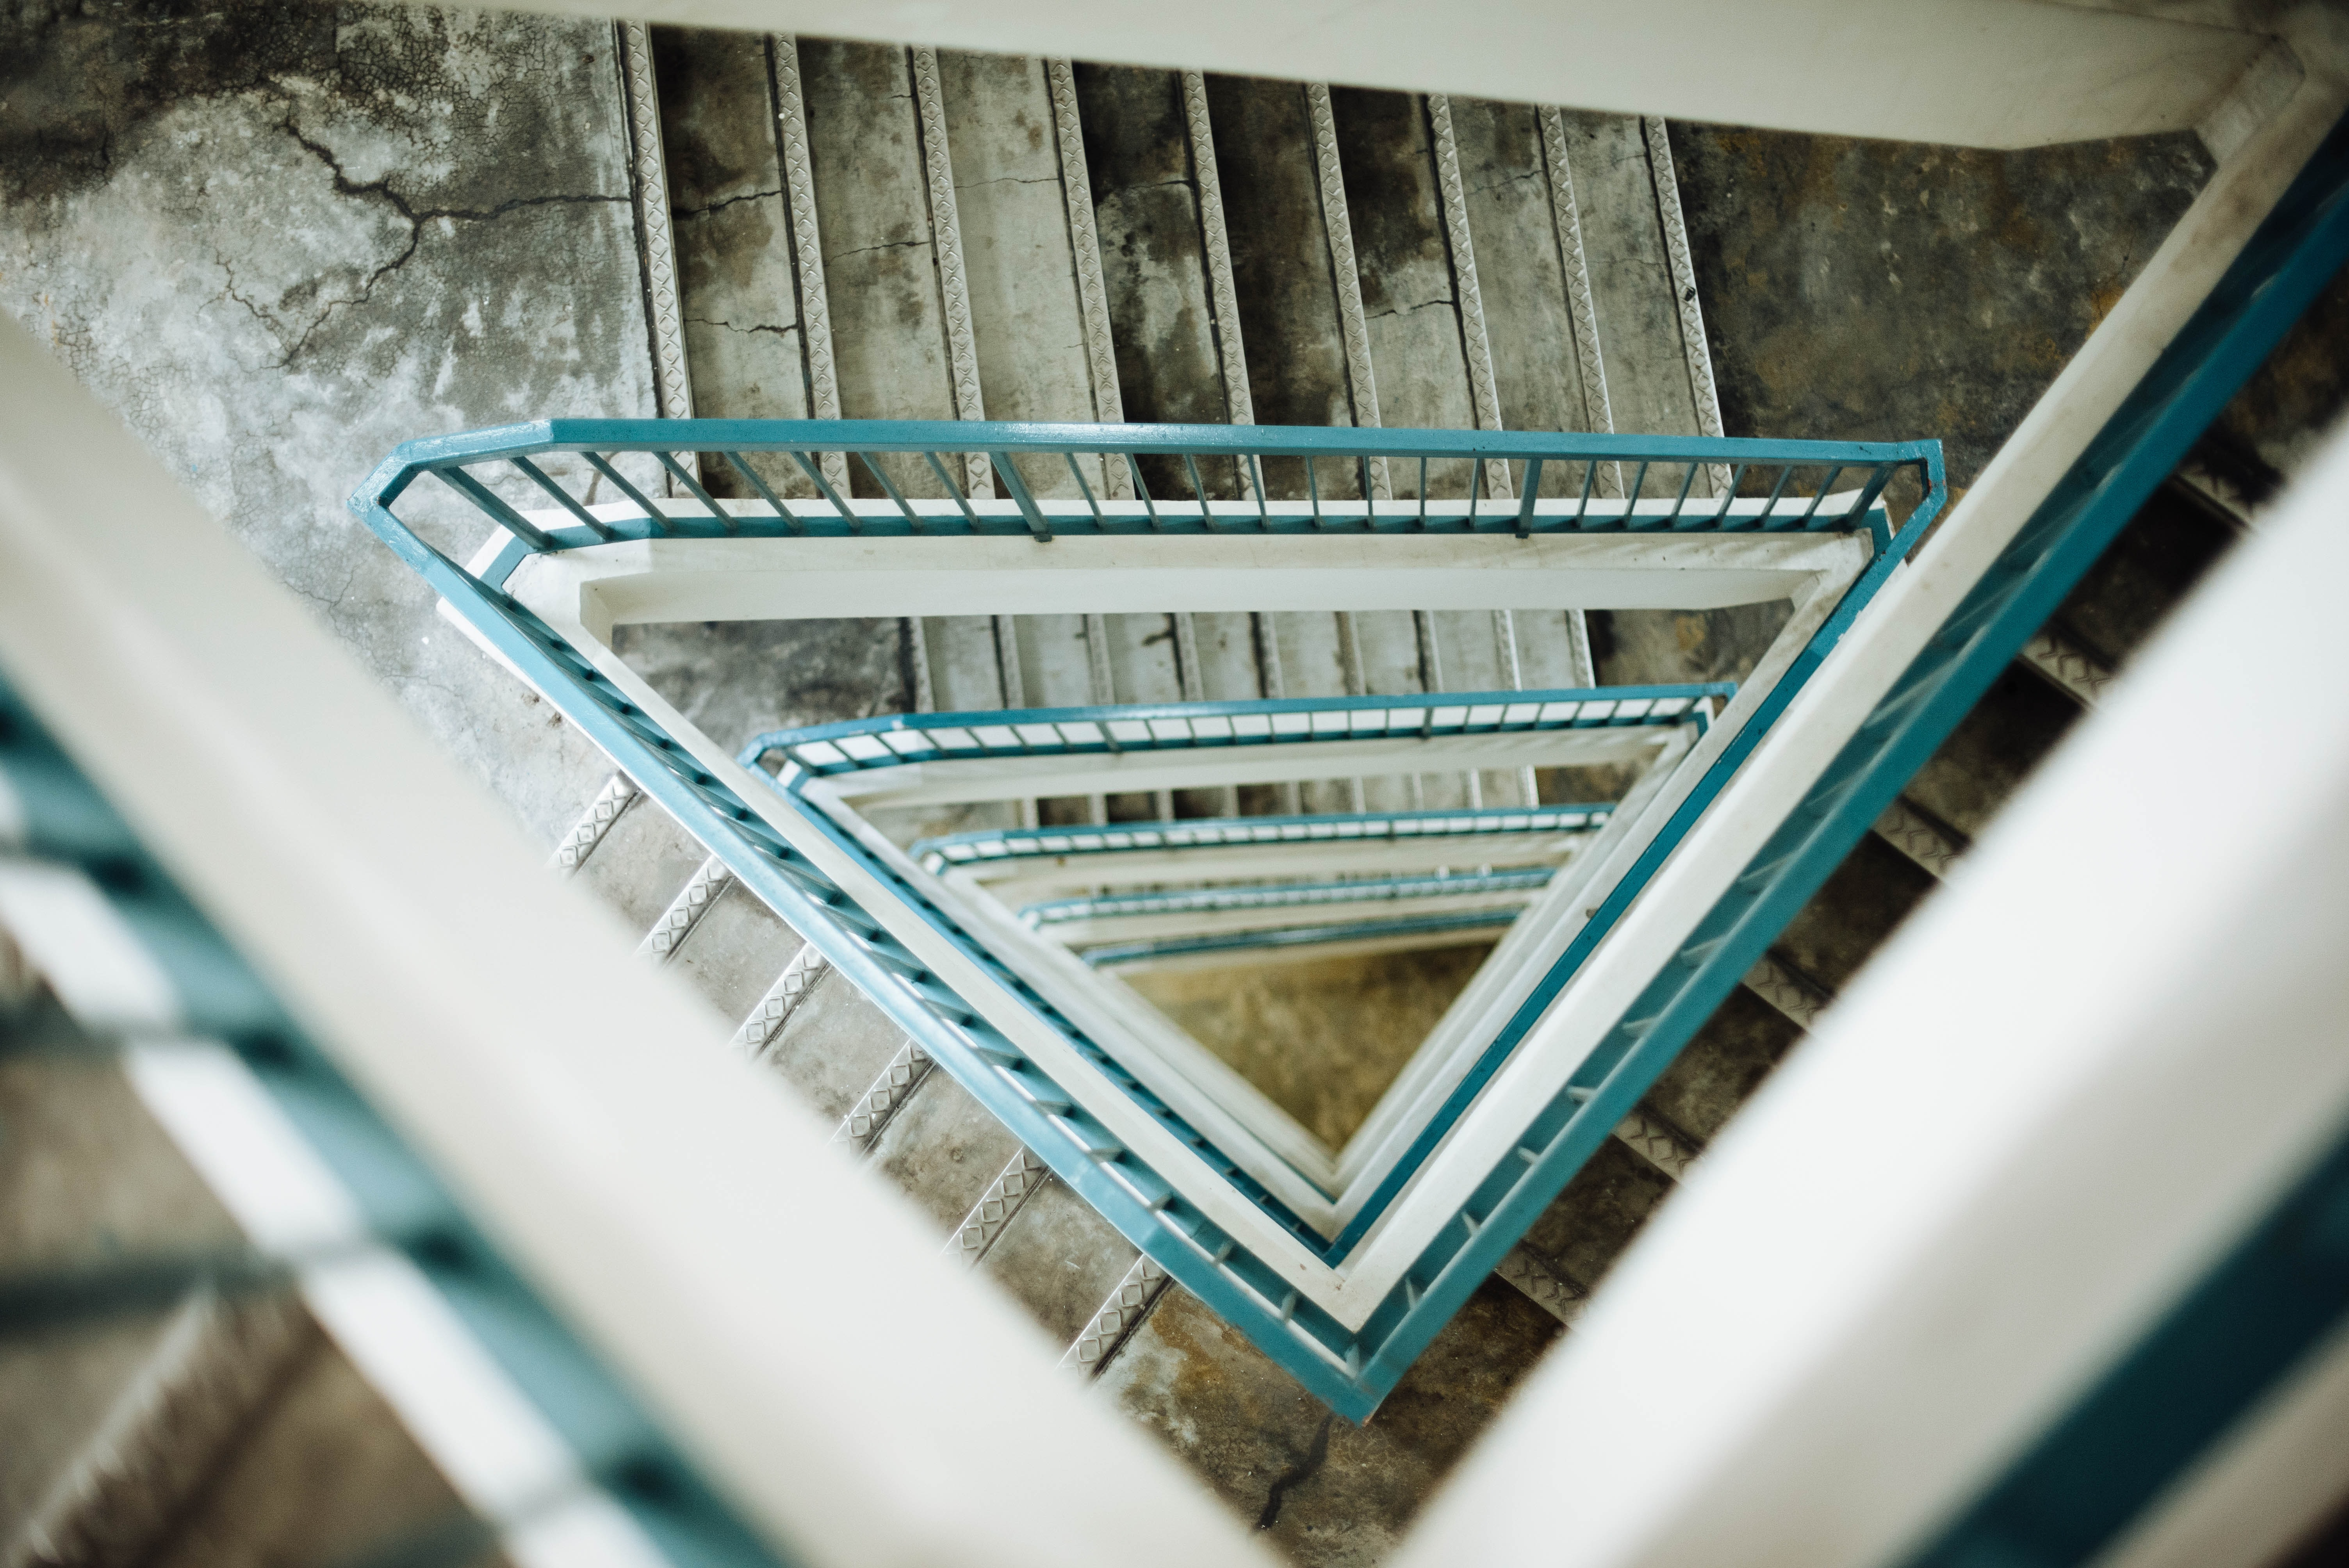 Looking down at the view of a triangular stairwell with teal-coloured handrails and slightly damaged steps